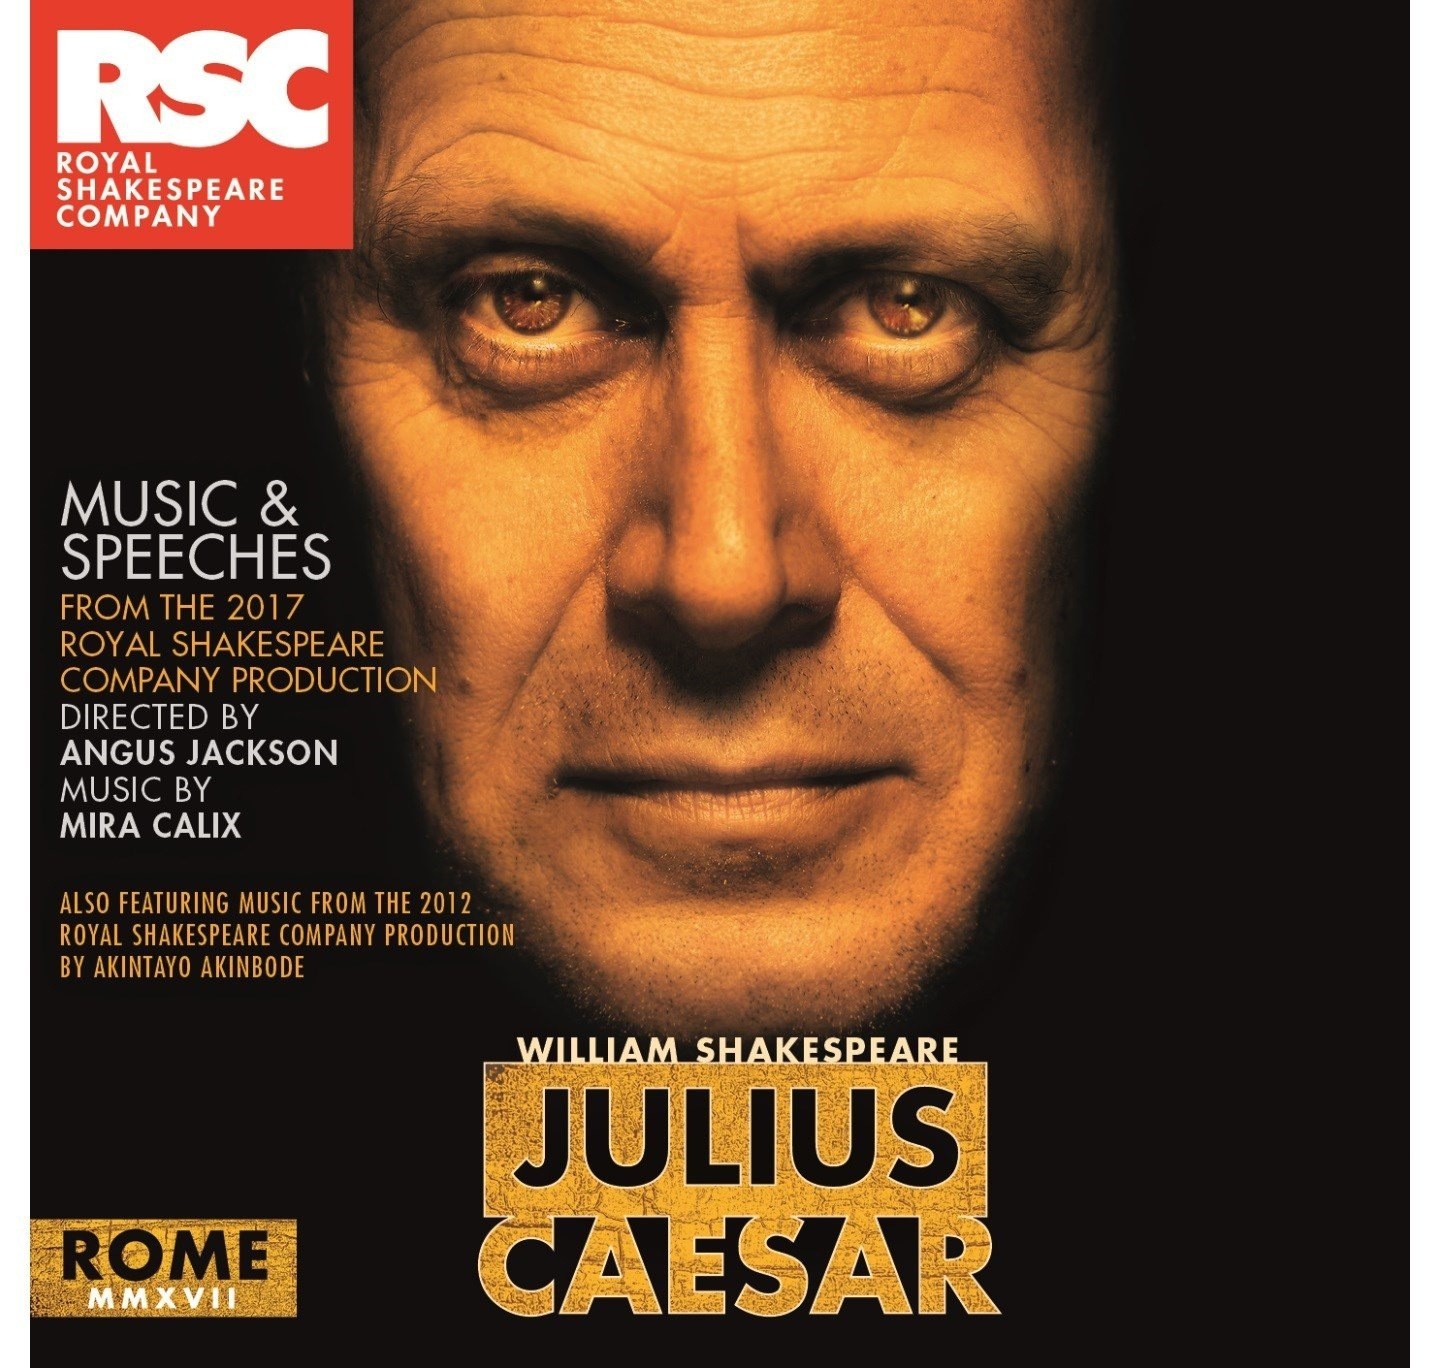 https://0201.nccdn.net/4_2/000/000/024/ec9/62350-julius-caesar-cd-2017-normal-1440x1368.jpg